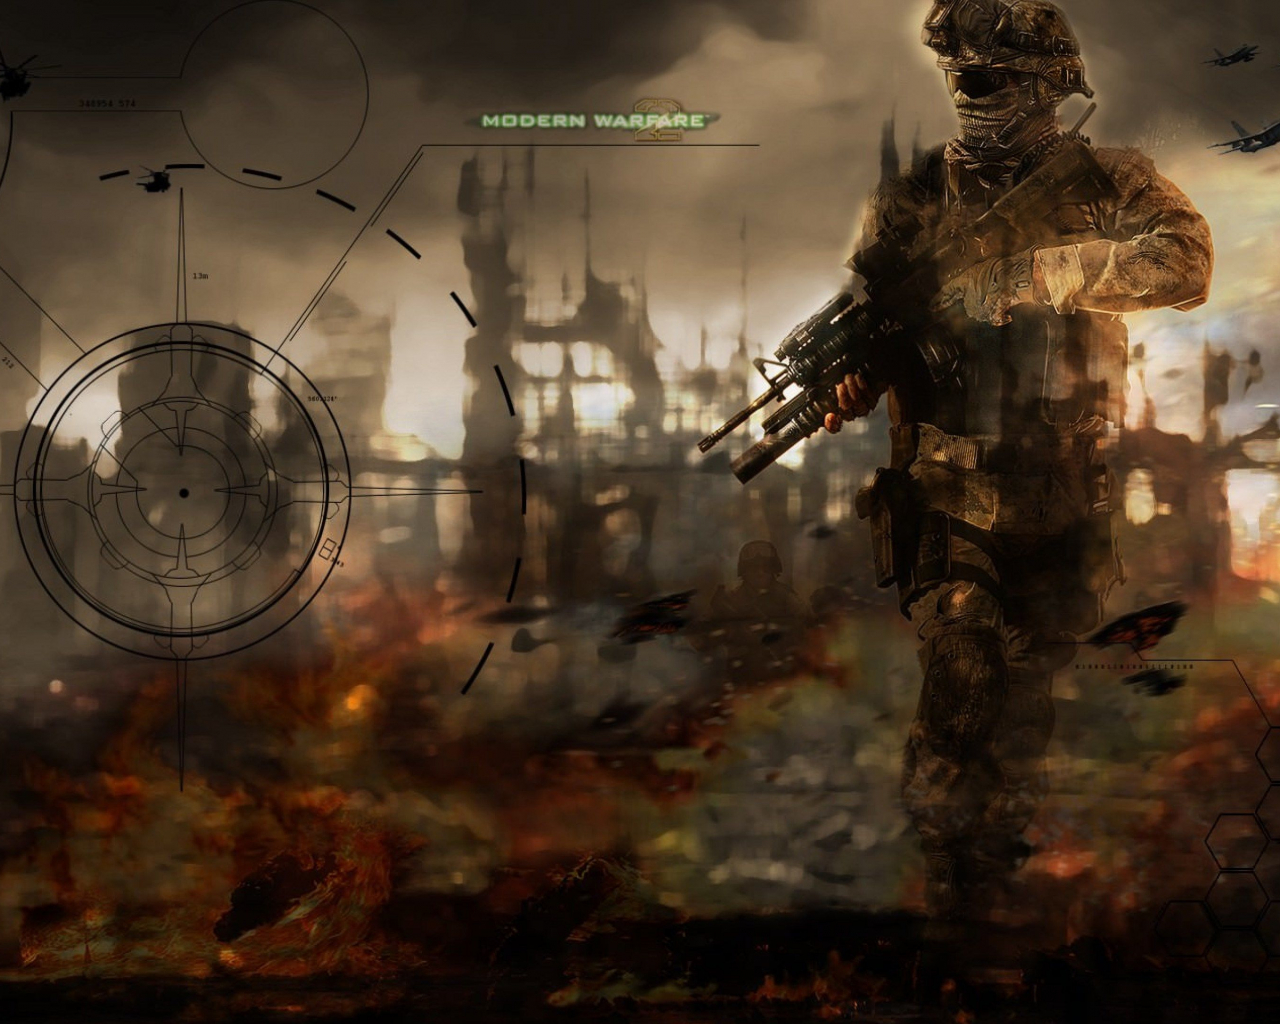 Free Download Call Of Duty Mw 2 Wallpaper 4k Ultra Hd Wallpaper Call Of Duty 4096x2160 For Your Desktop Mobile Tablet Explore 50 Call Of Duty Modern Warfare 2 Hd